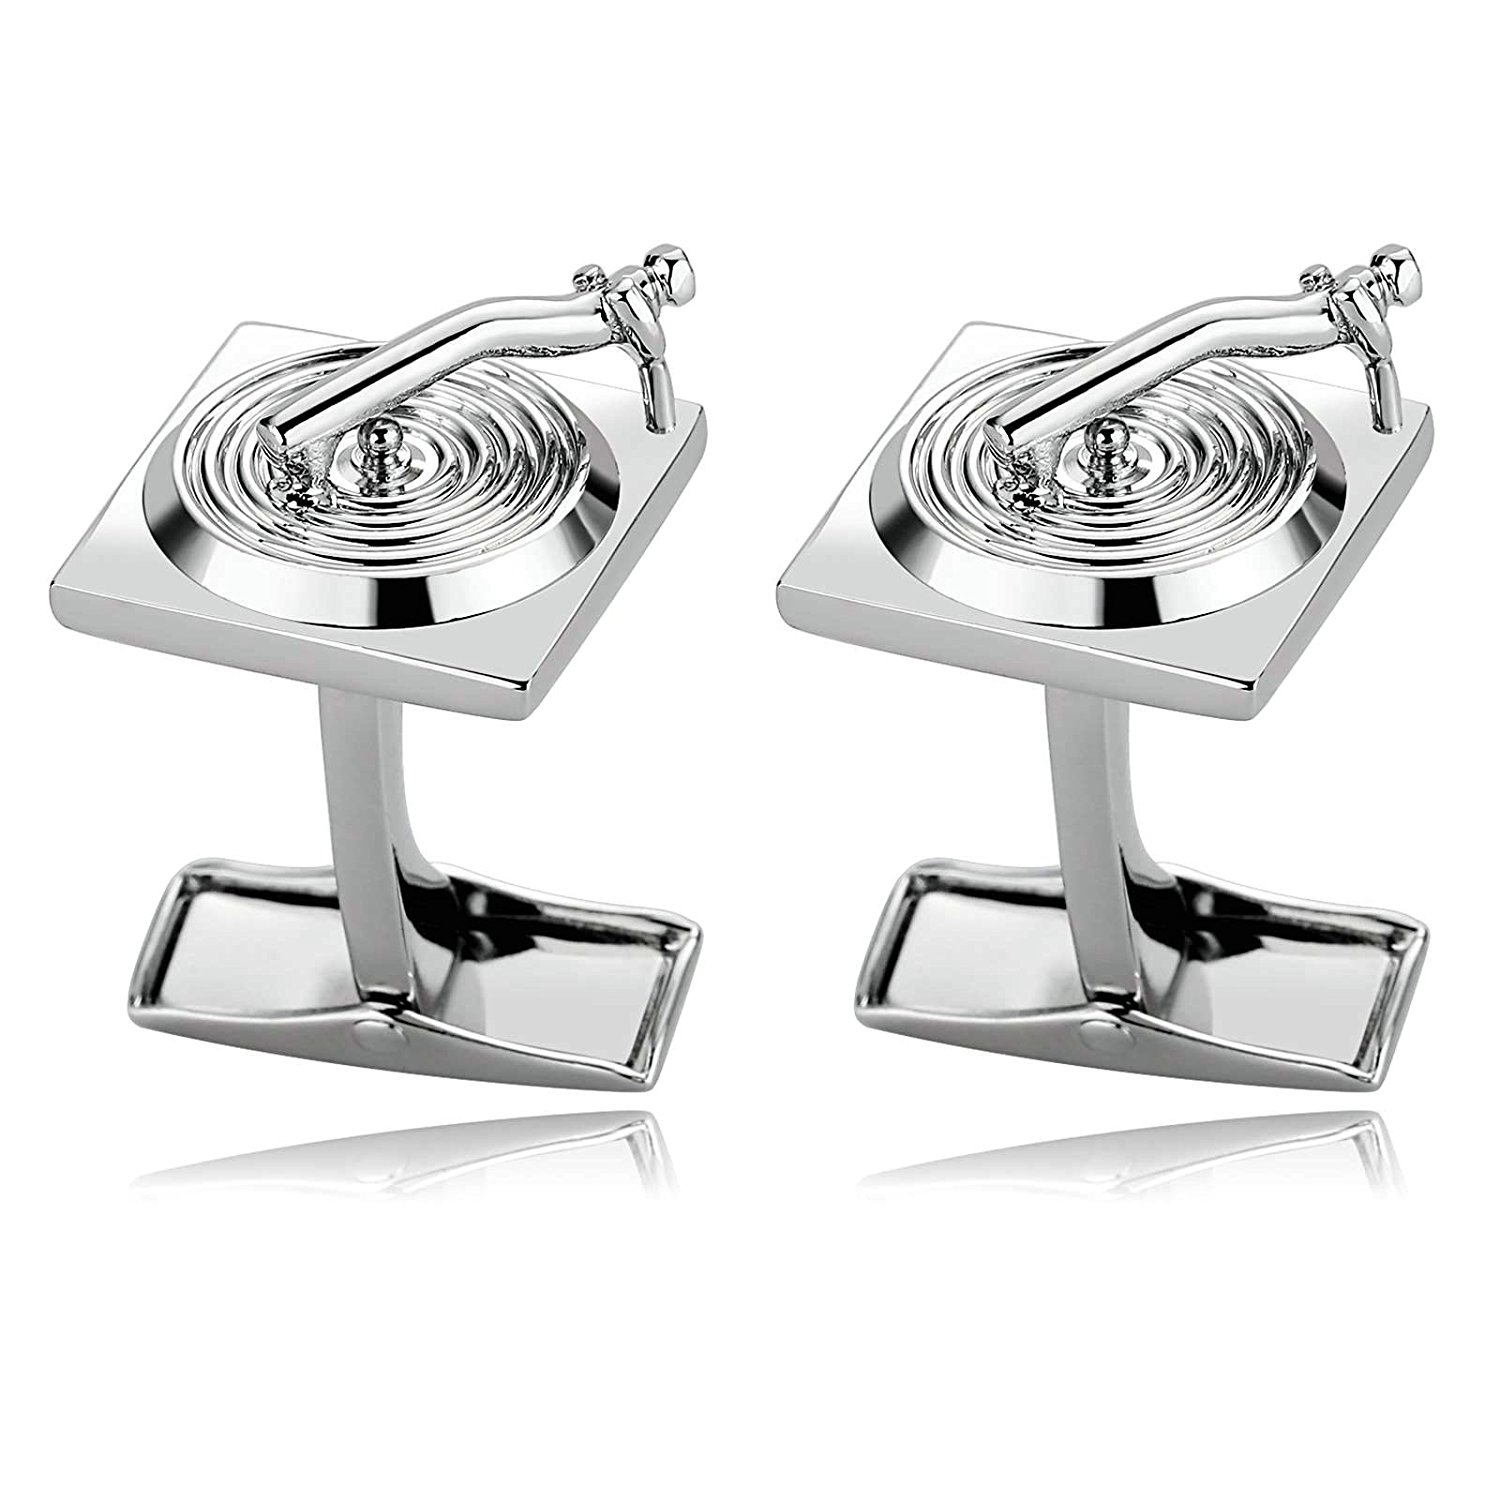 Aooaz Mens Stainless Steel Cufflinks 2Pcs Tuxedo Shirt Business Wedding With Gift Box 6 Styles Jewelry